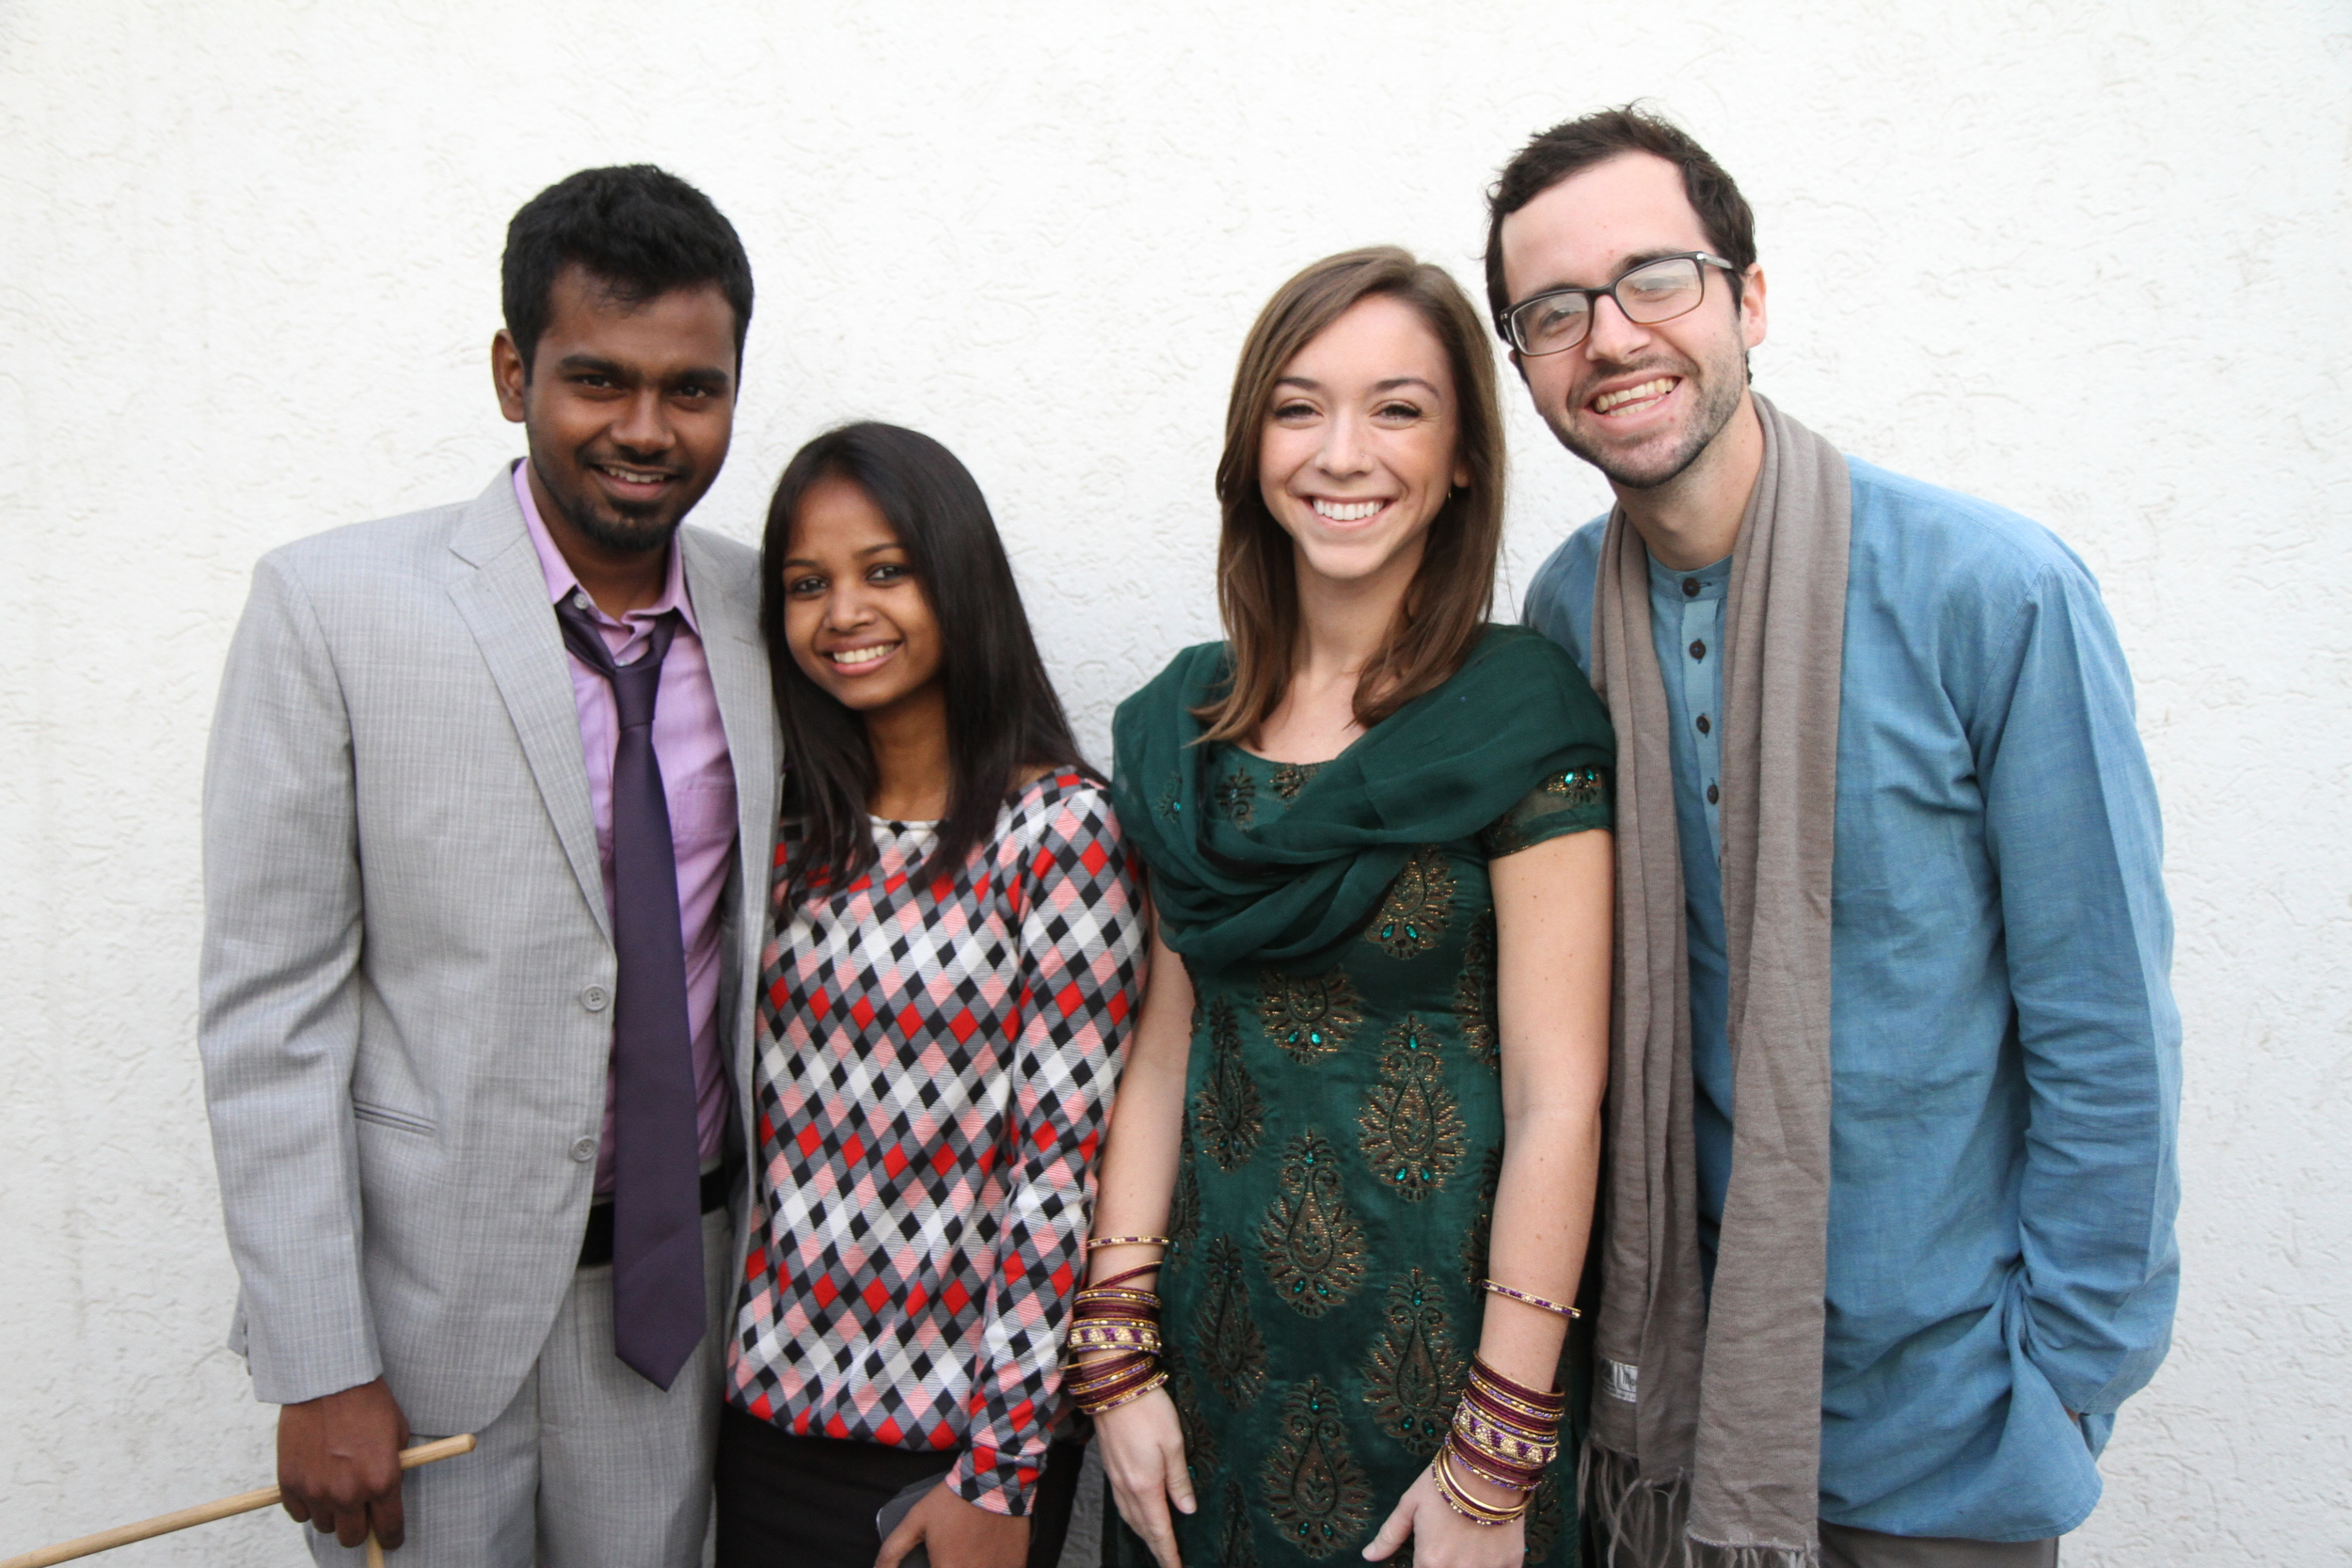 Manohar and Sneha Purti Paul with Nick Sherrod and Leah Sherrod, December 2012. Though he just began formally working with our organization this month, Manohar has offered his help and friendship to our organization for years.